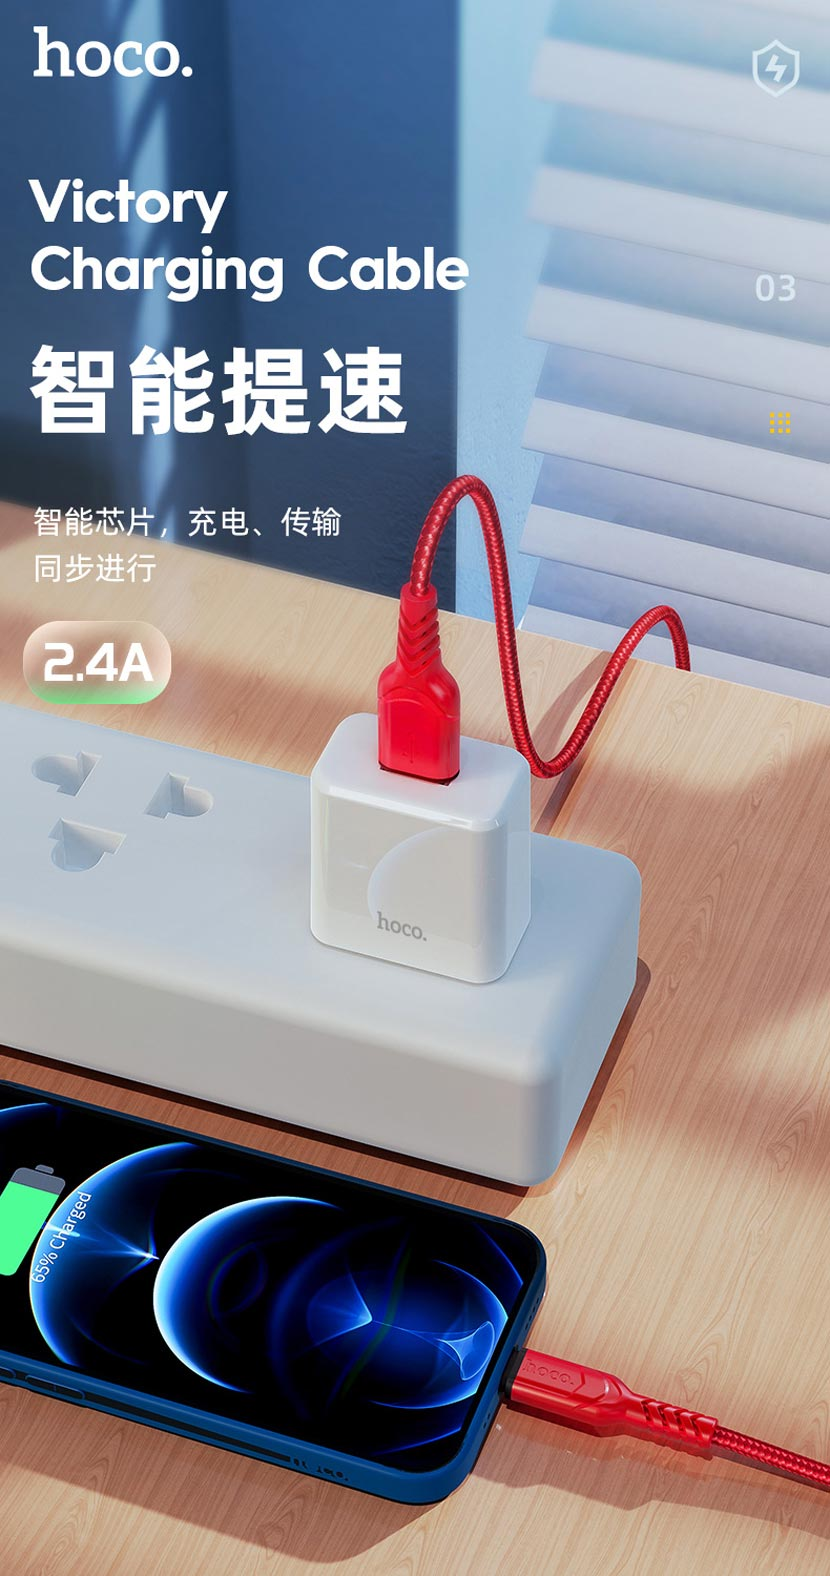 hoco news x59 victory charging data cable intelligent cn